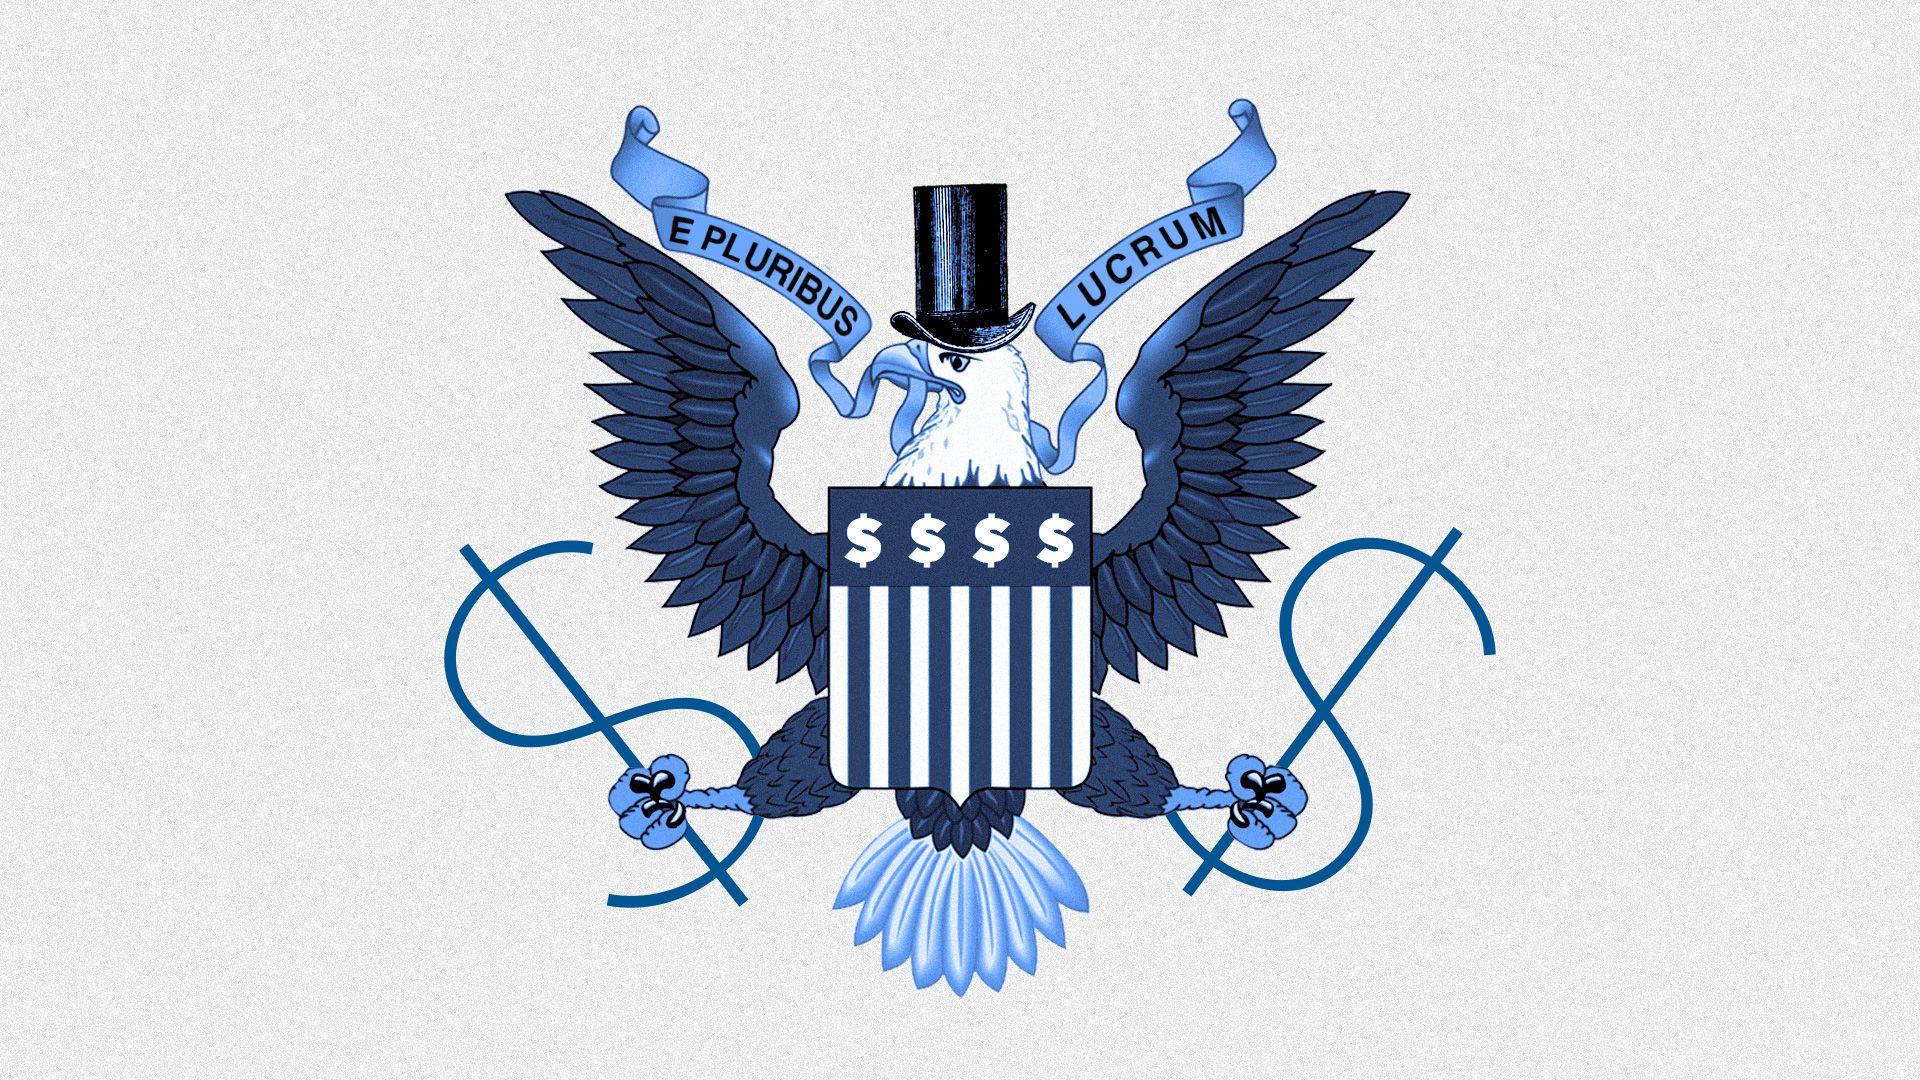 The eagle from the seal of the United States, holding dollar symbols in its claws